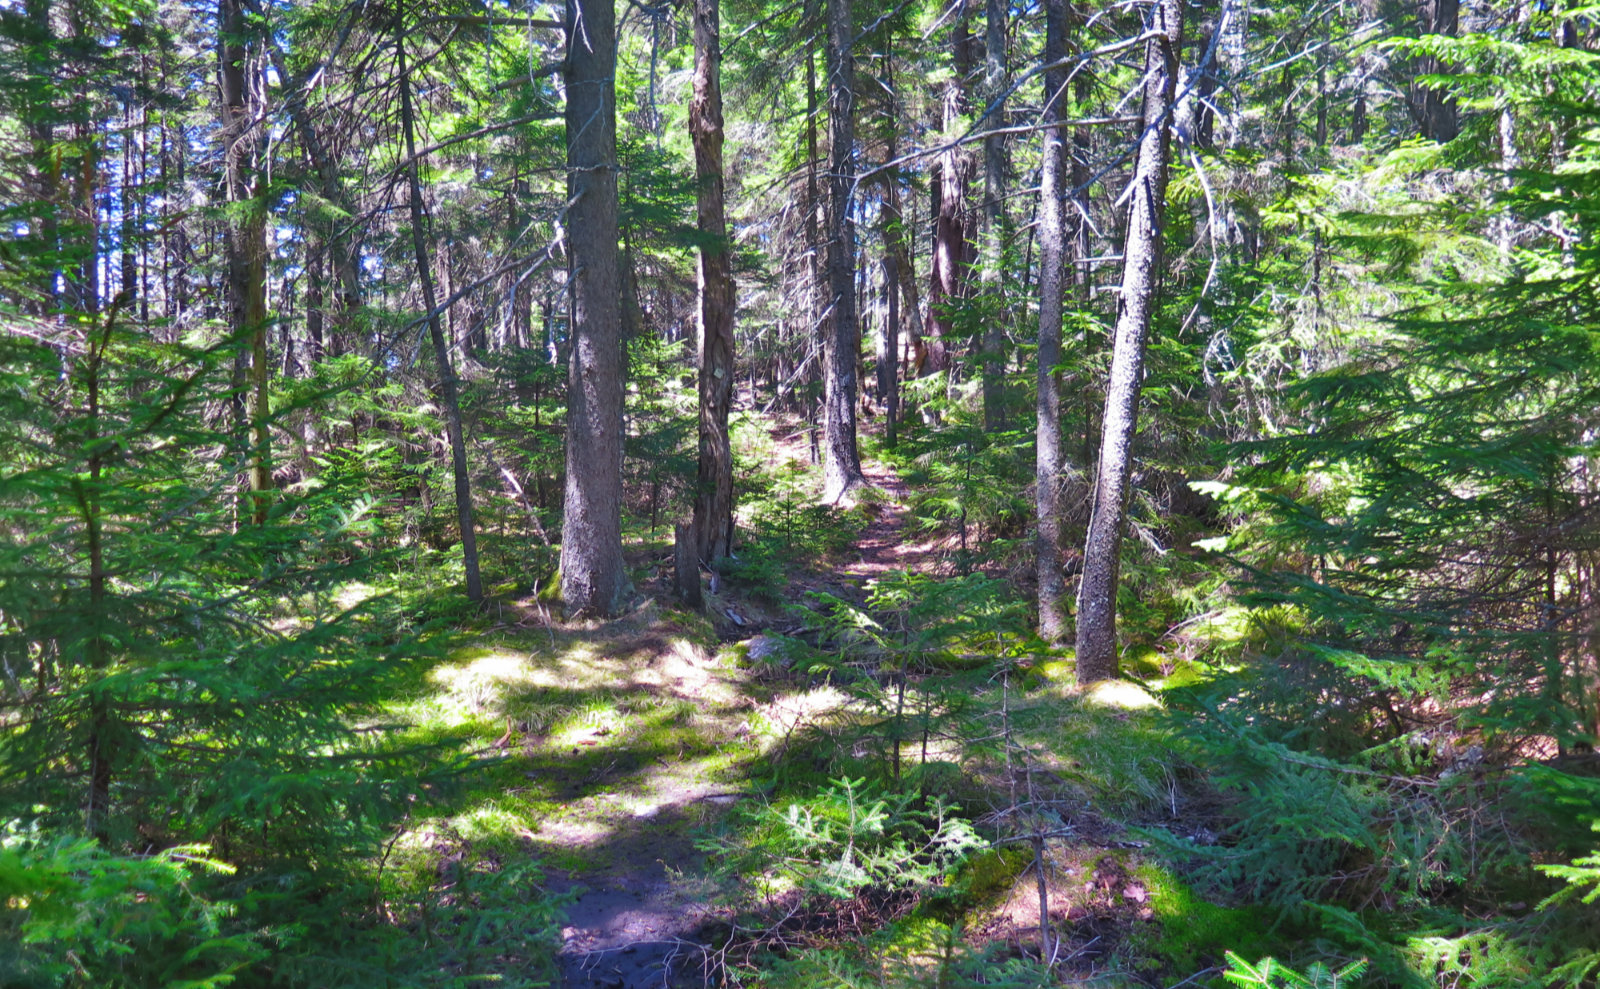 06-Mossy-Trail-Ragged-20200520